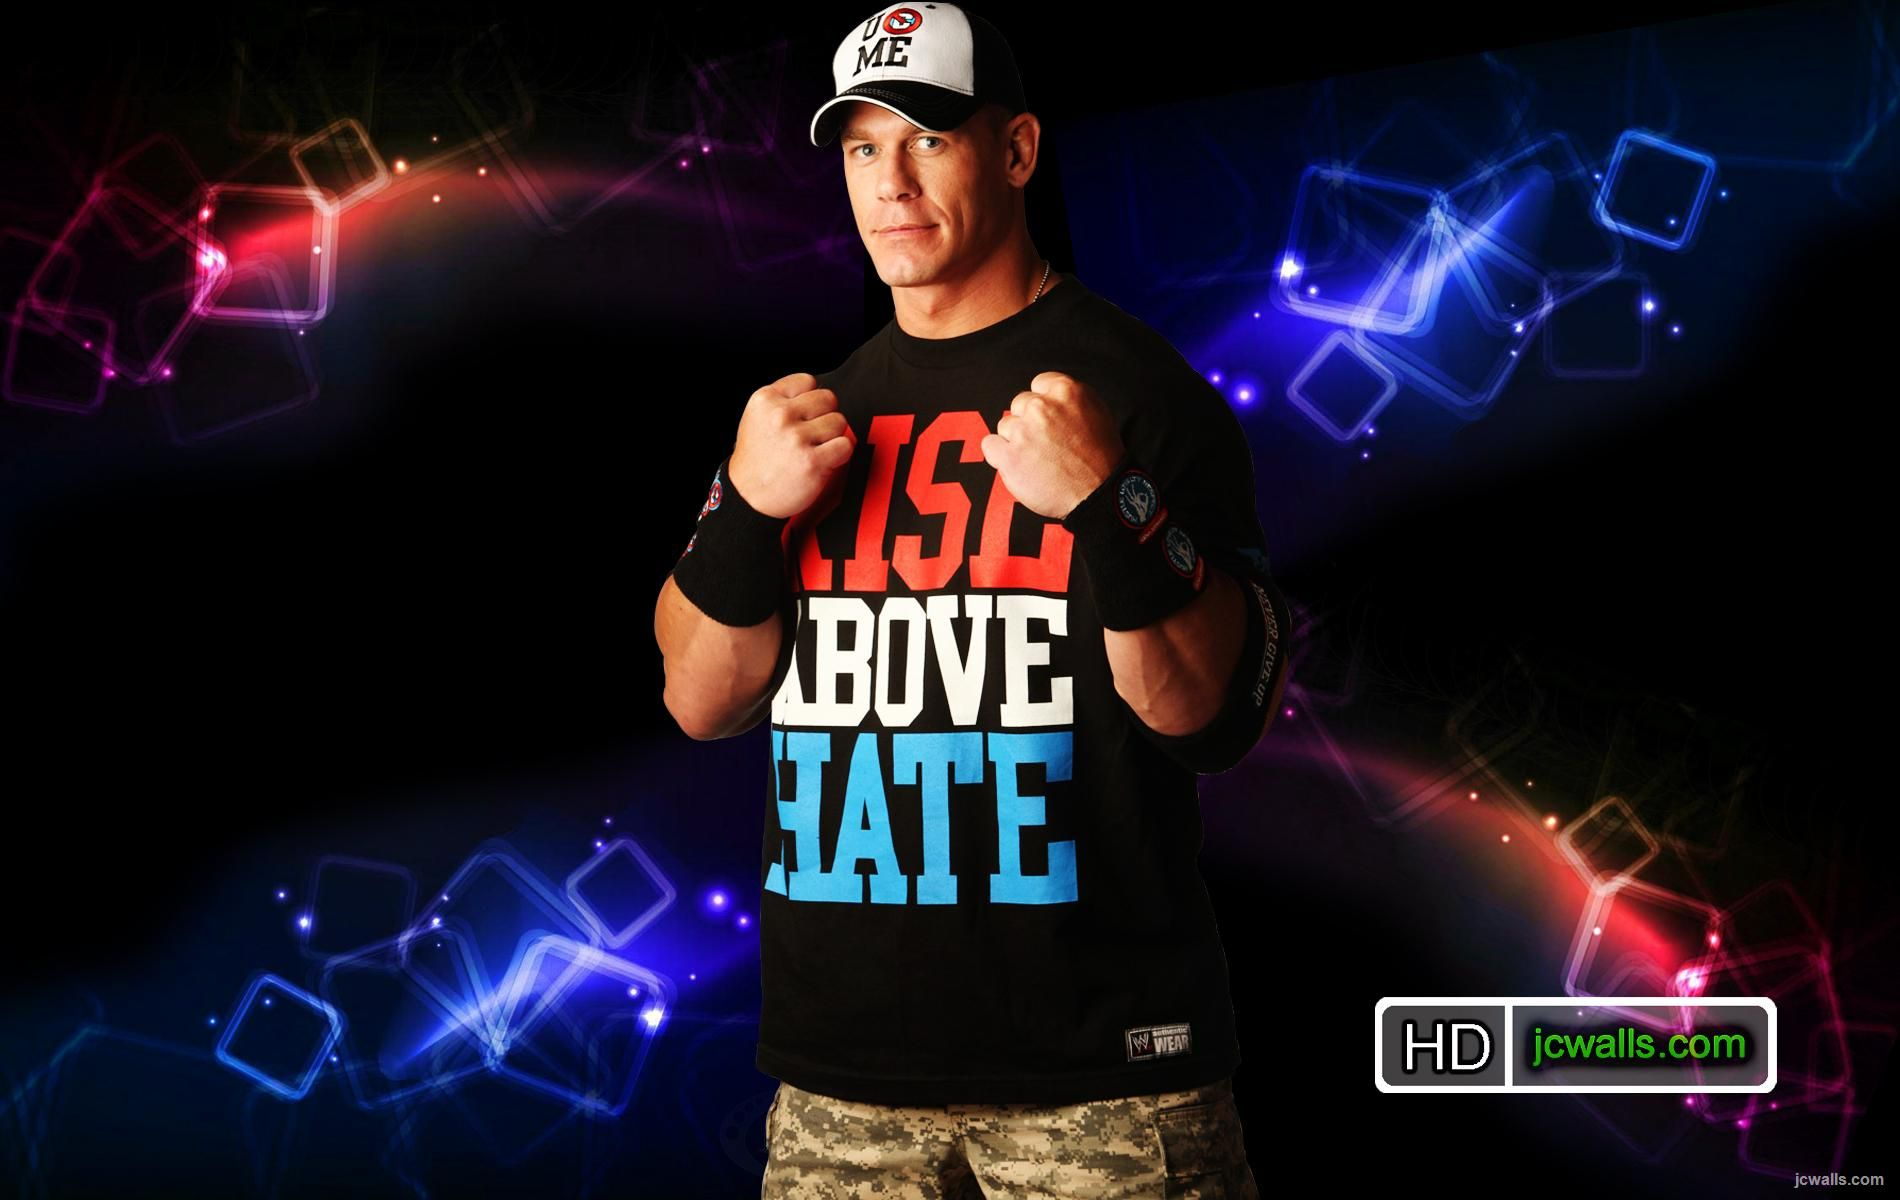 Free Download Wwe John Cena Hd Wallpapers 1900 1200 John Cena Hd